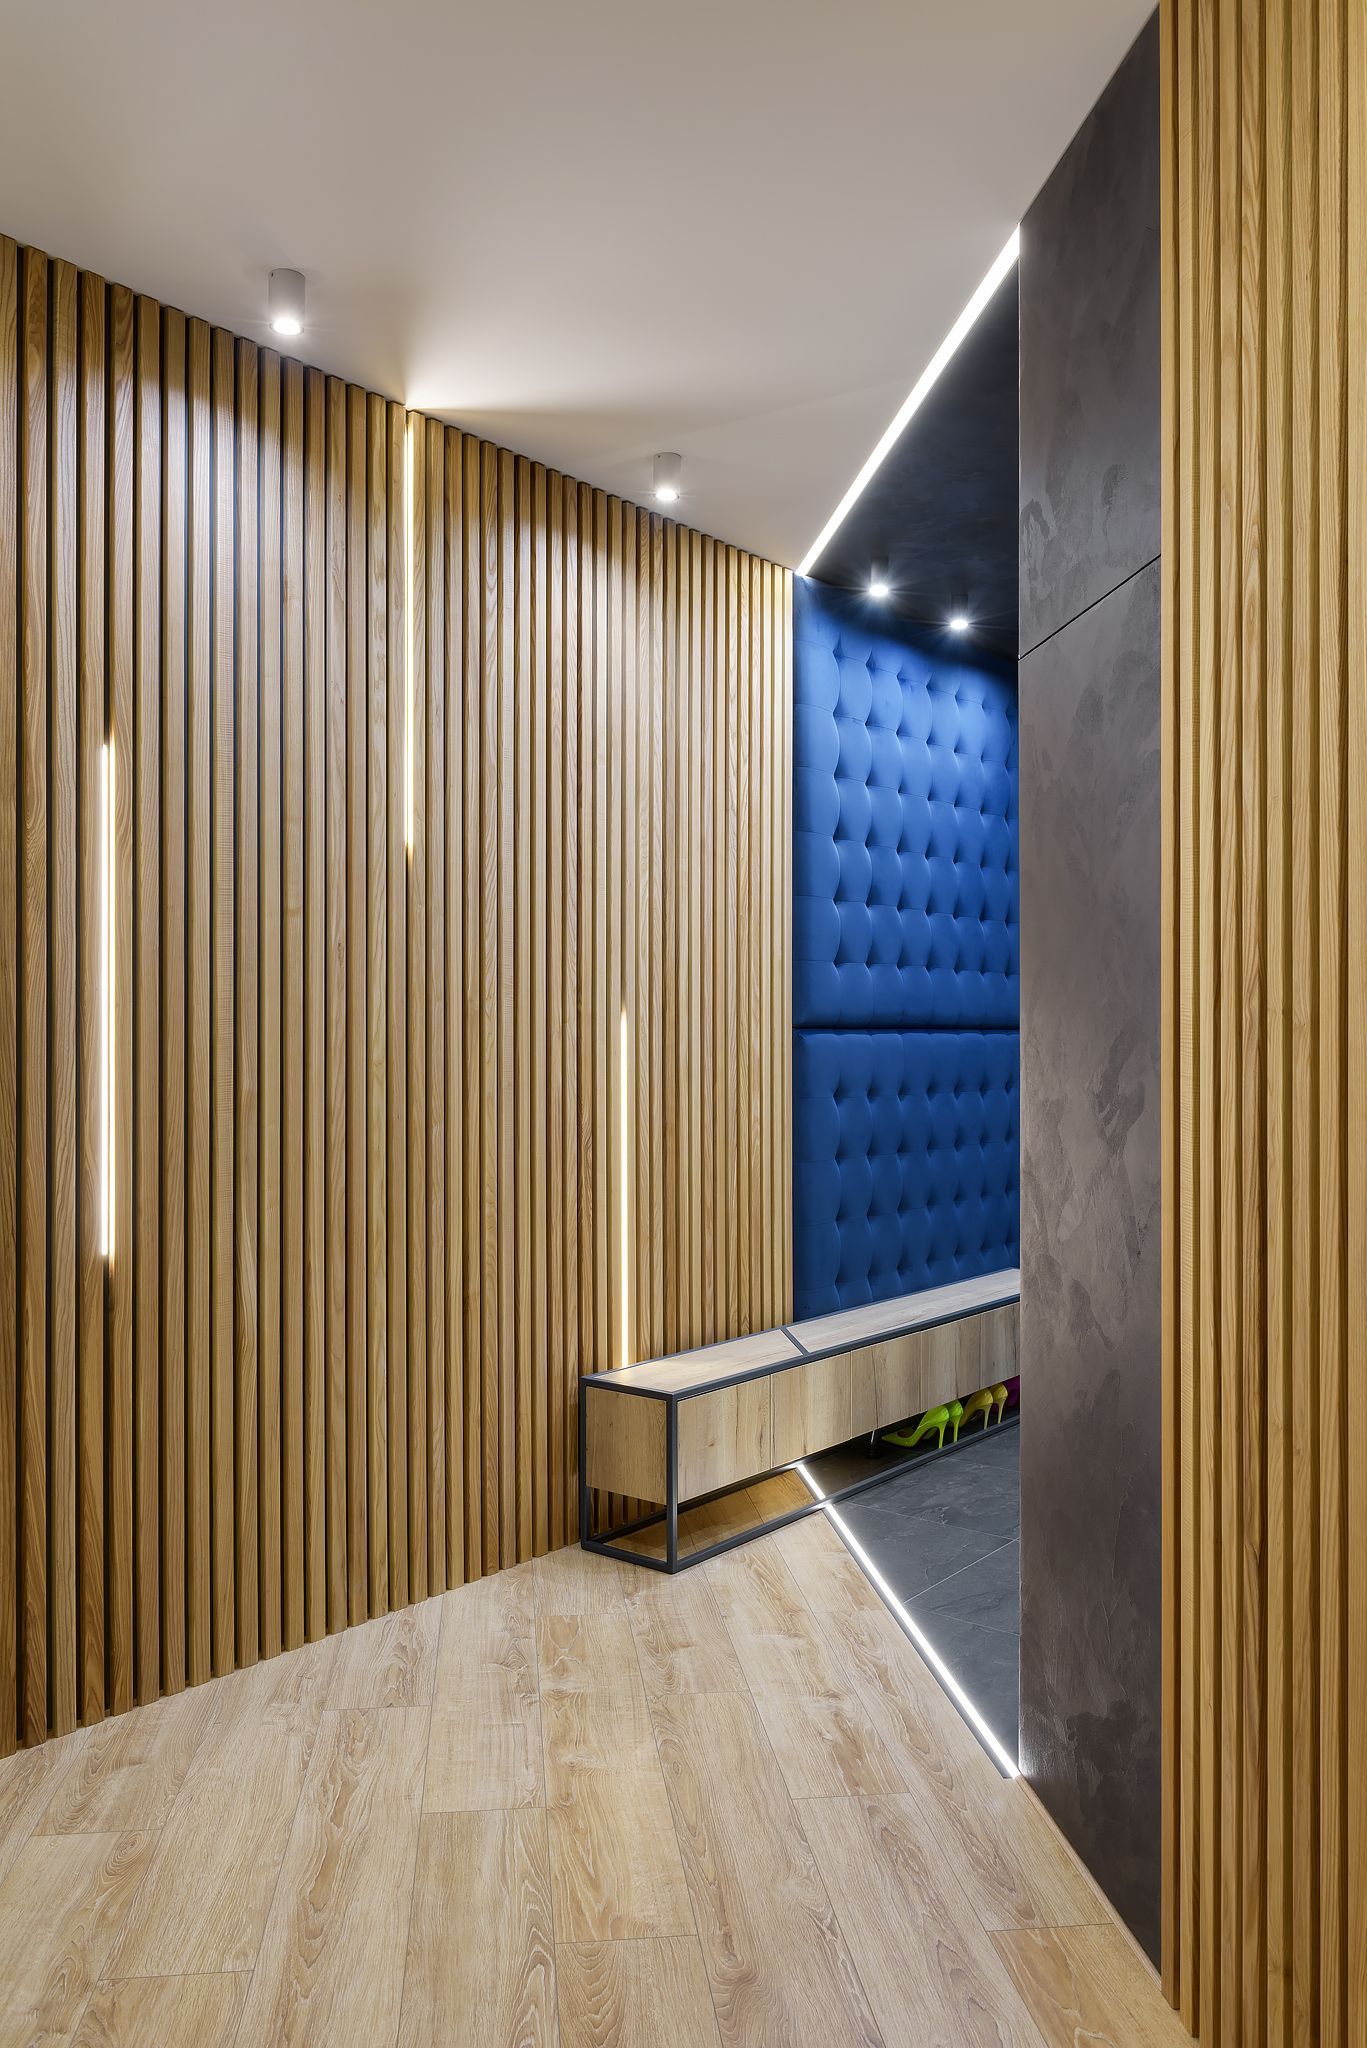 Interior Wood Paneling: Cozy Panelling In Hallway With Wooden Panels Batten Plank